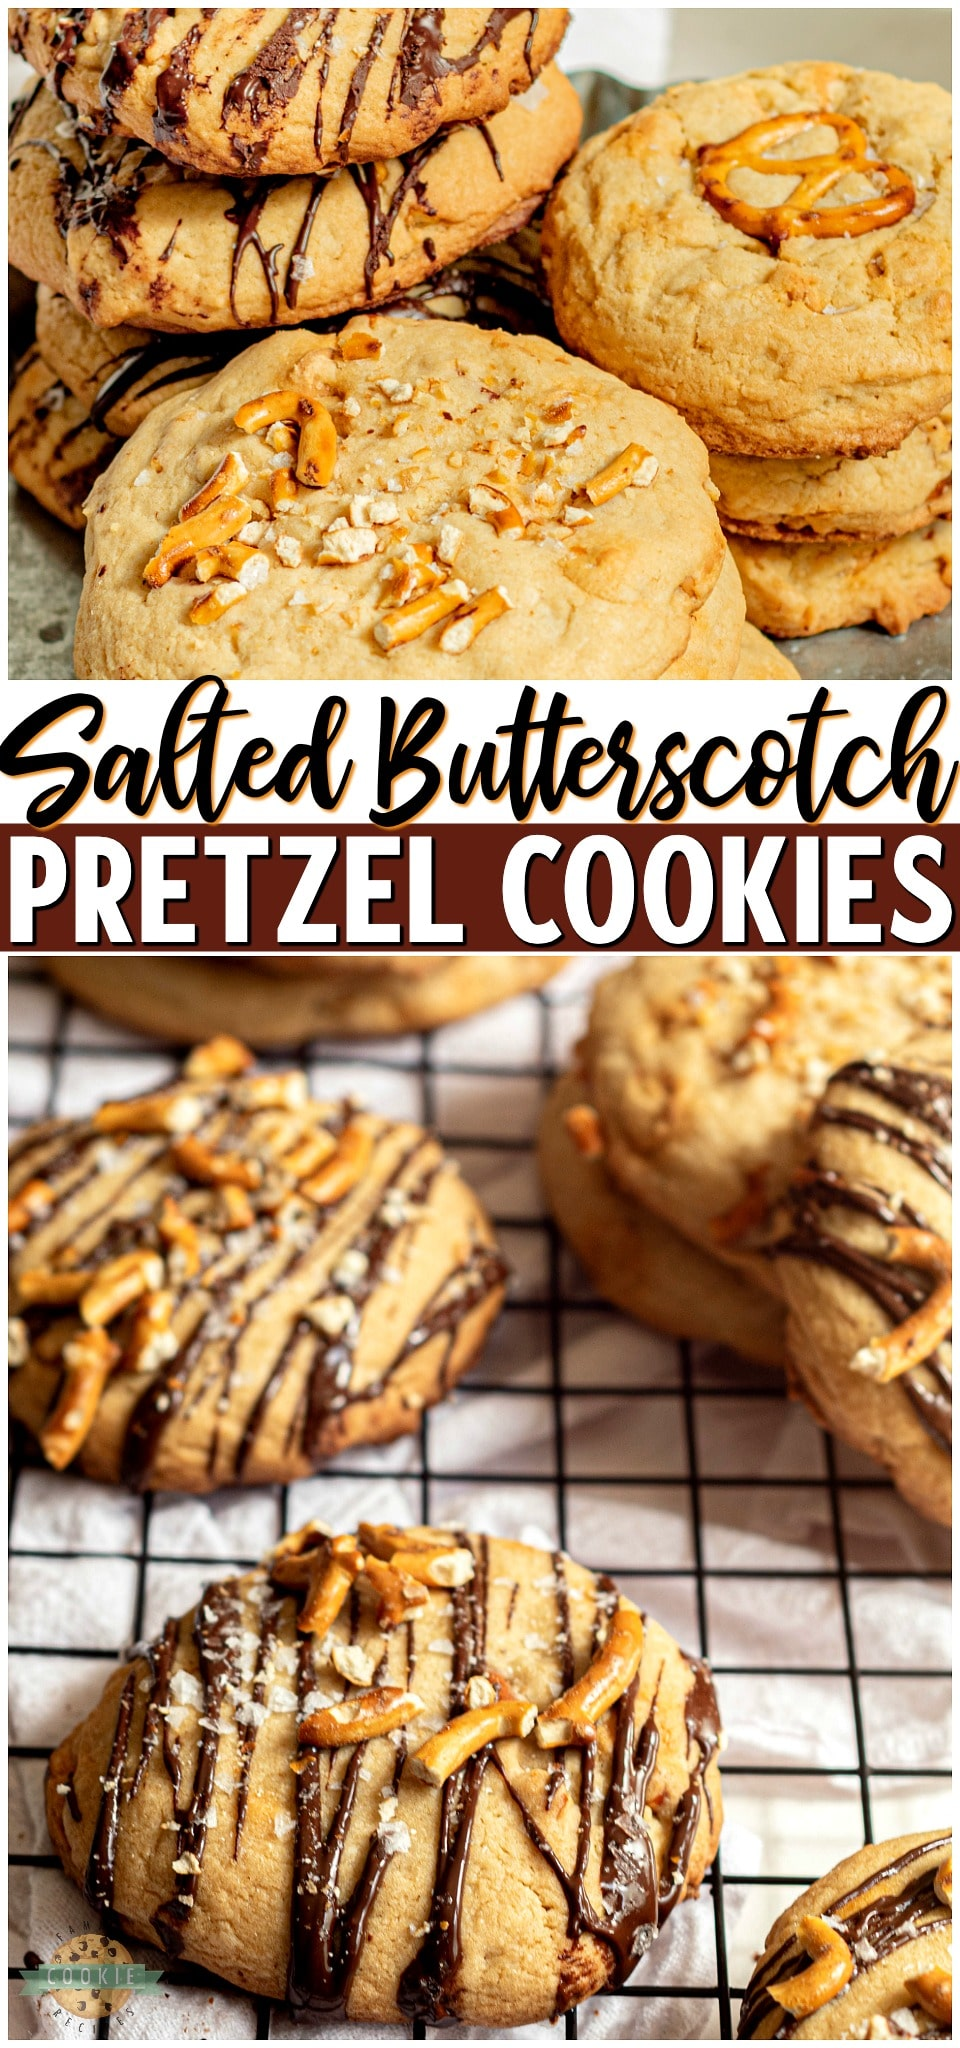 Sea Salt Butterscotch Pretzel Cookies are sweet and salty cookies that pack a little crunch and a whole lot of flavor! With sea salt, pretzels, butterscotch chips, and a chocolate drizzle these loaded cookies are a family favorite! #cookies #salted #butterscotch #pretzels #baking #dessert #easyrecipe from FAMILY COOKIE RECIPES via @buttergirls